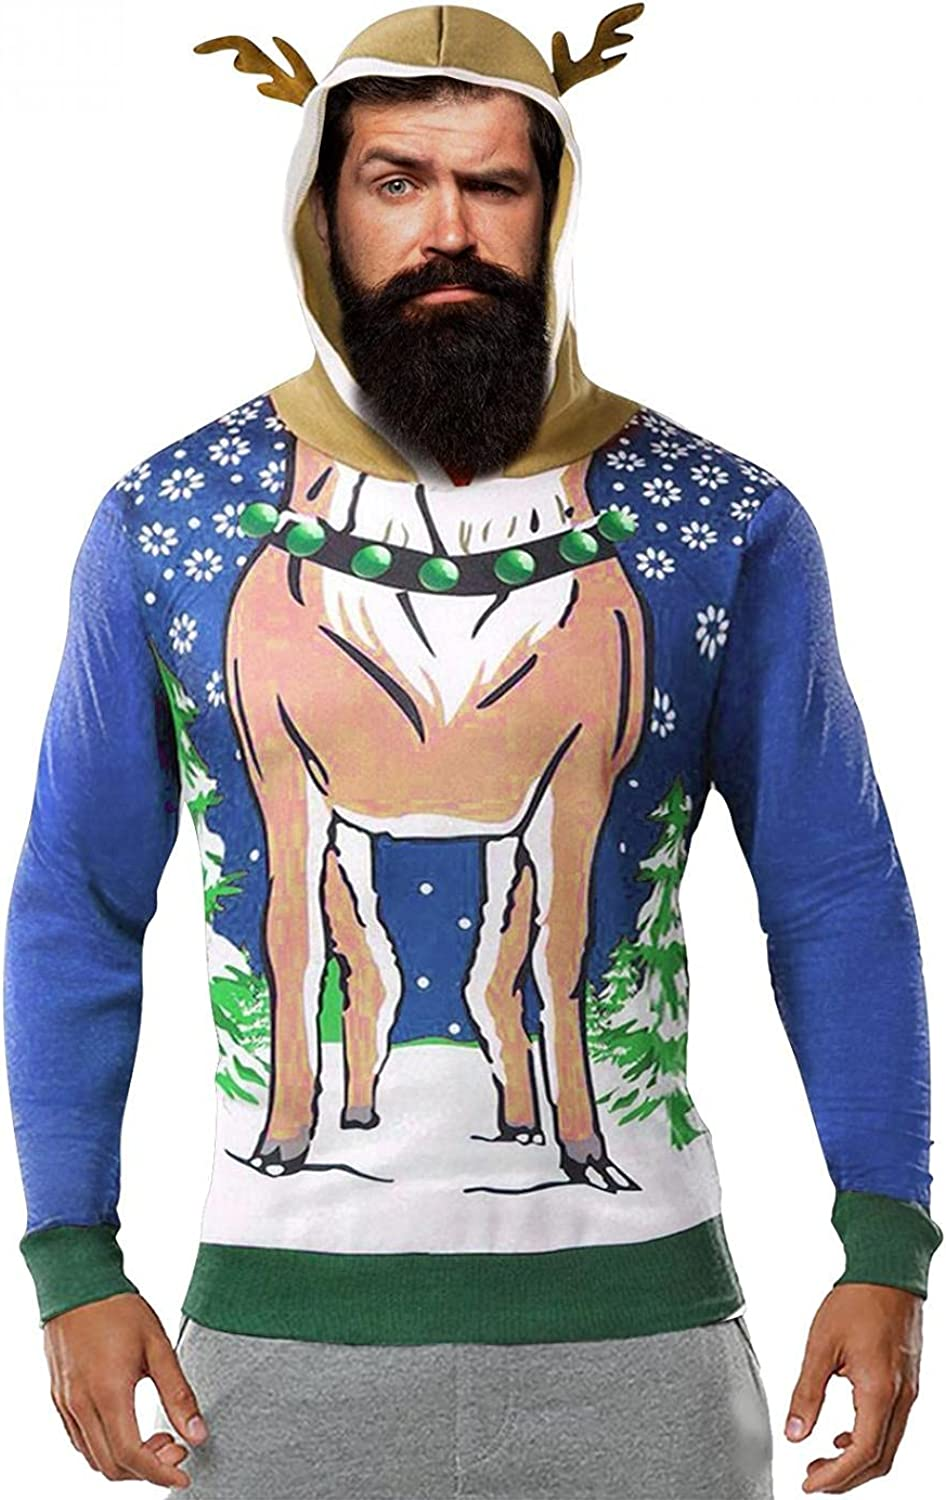 PHSHY Unisex Ugly Christmas Sweater Mens Knit Hoodies Funny Tacky Christmas Tree Reindeer Snowflake Pullover Tops